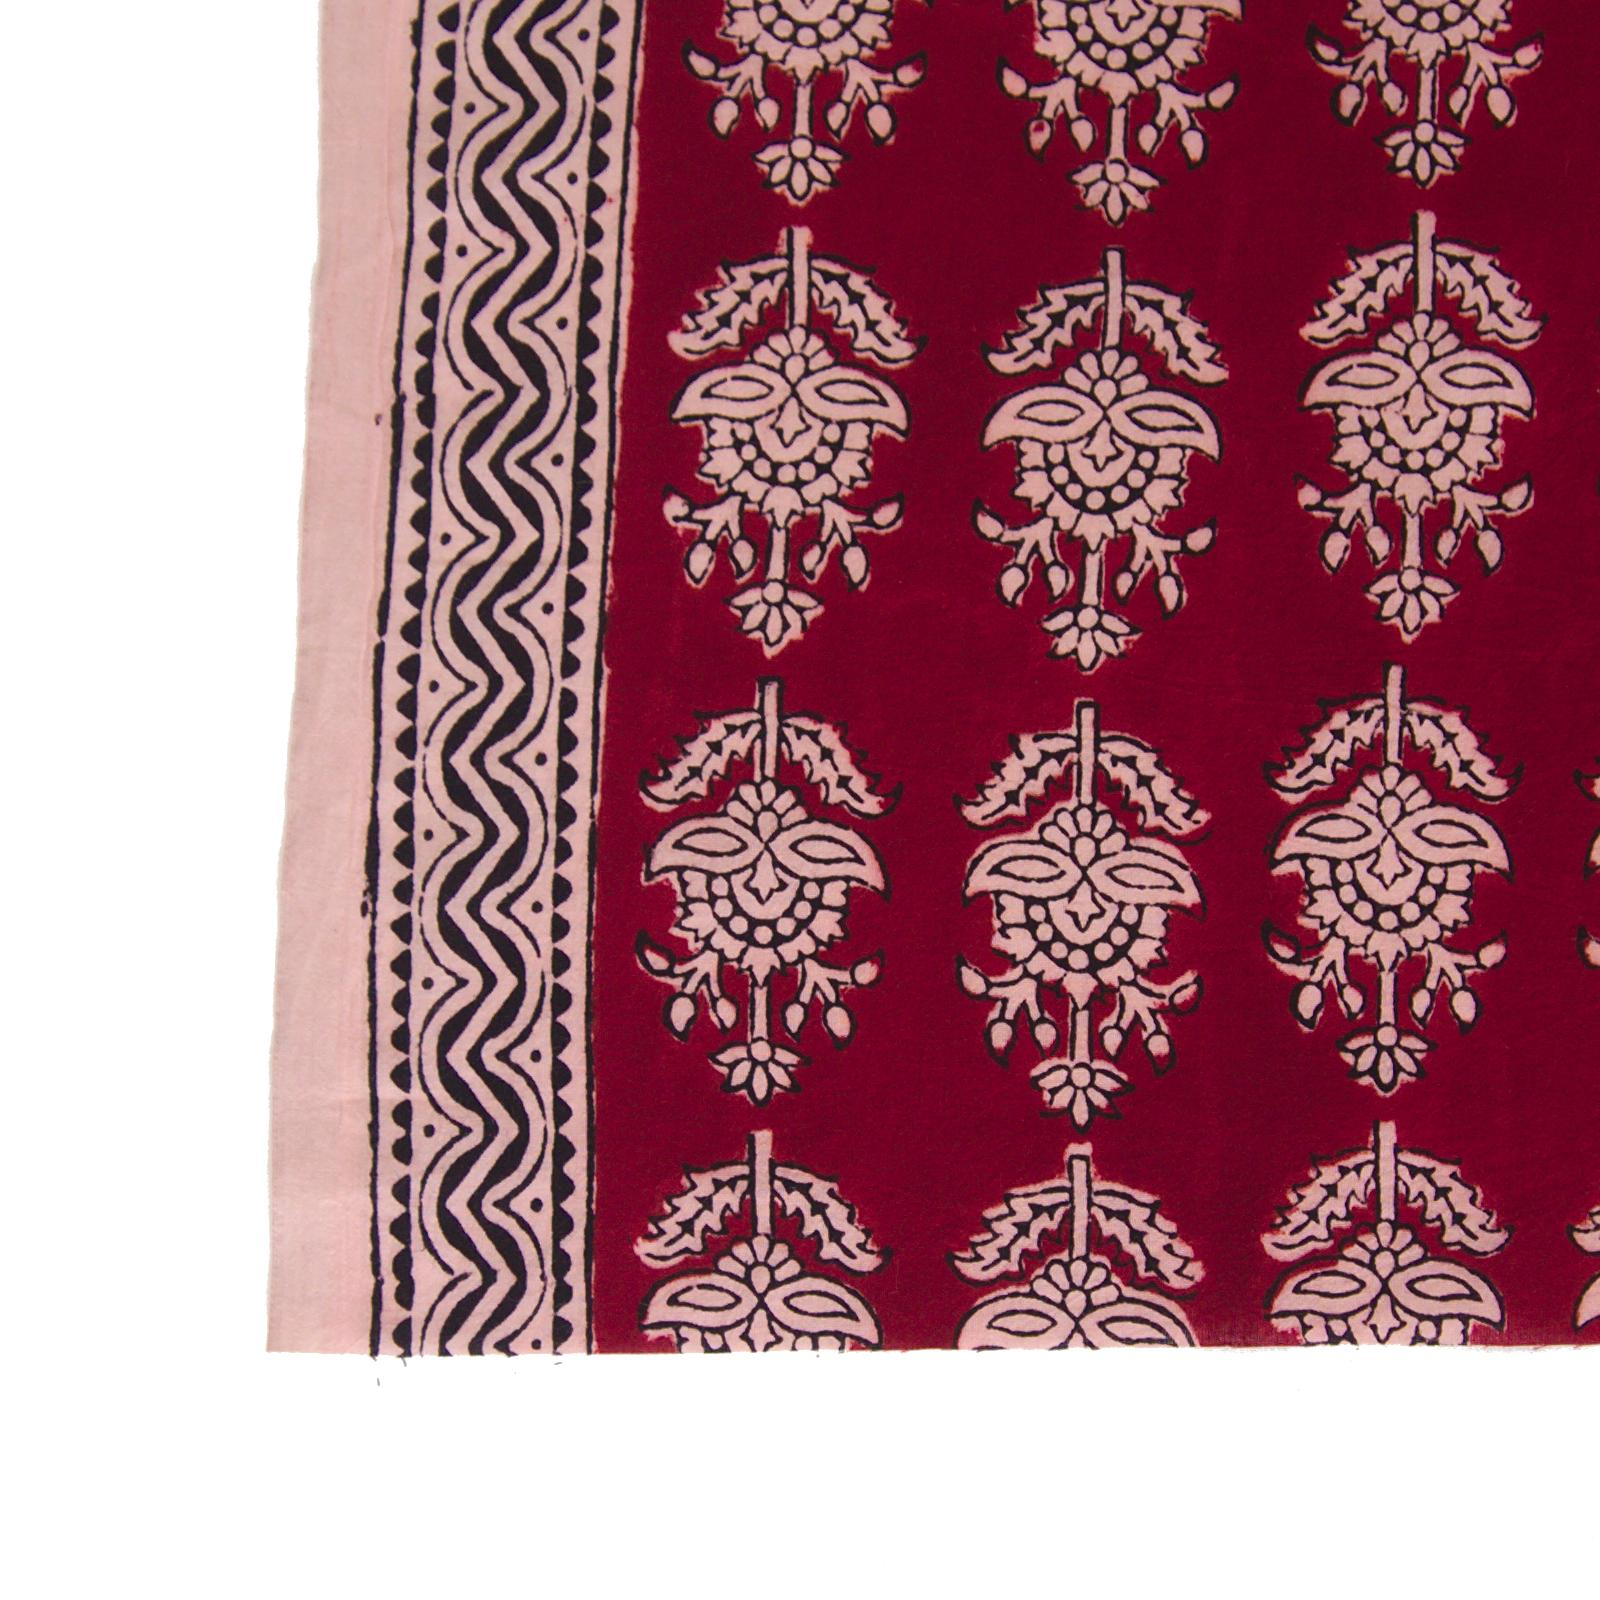 100% Block-Printed Cotton Fabric From India - Talkin' About Design - Iron Rust Black & Alizarin Red Dyes - Border - Live